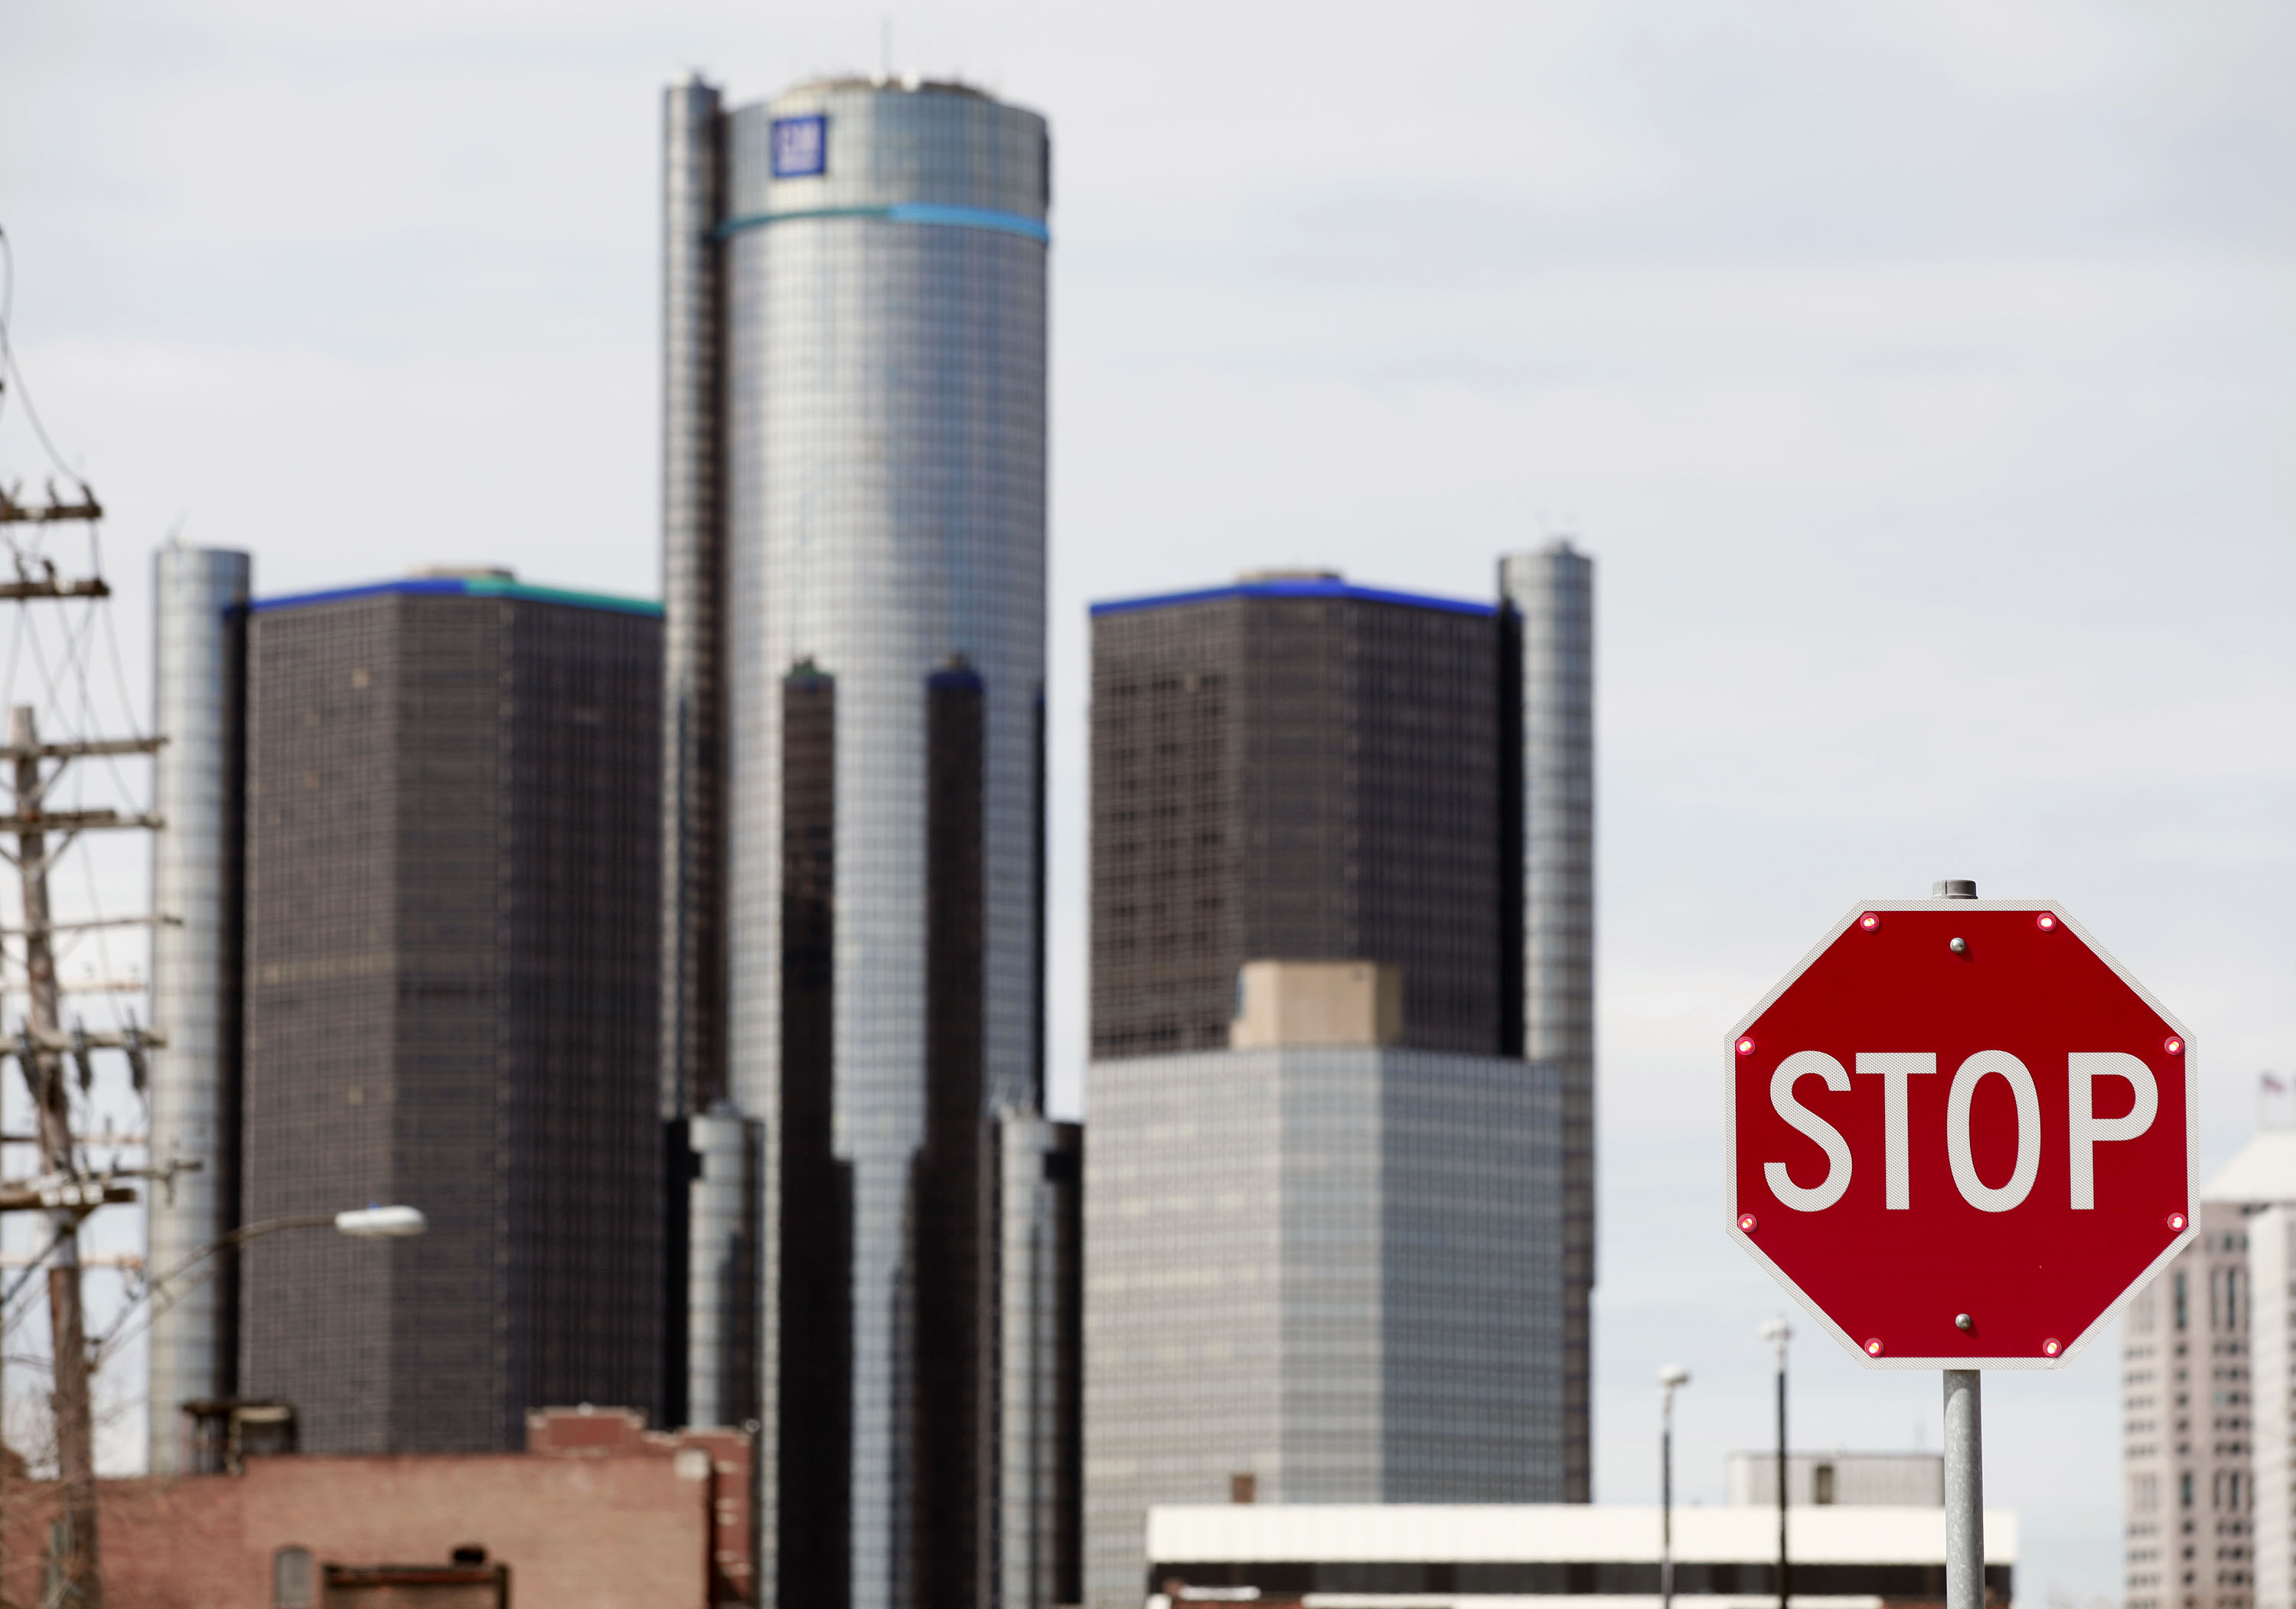 The General Motors world headquarters is shown April 24, 2014 in Detroit, Michigan.